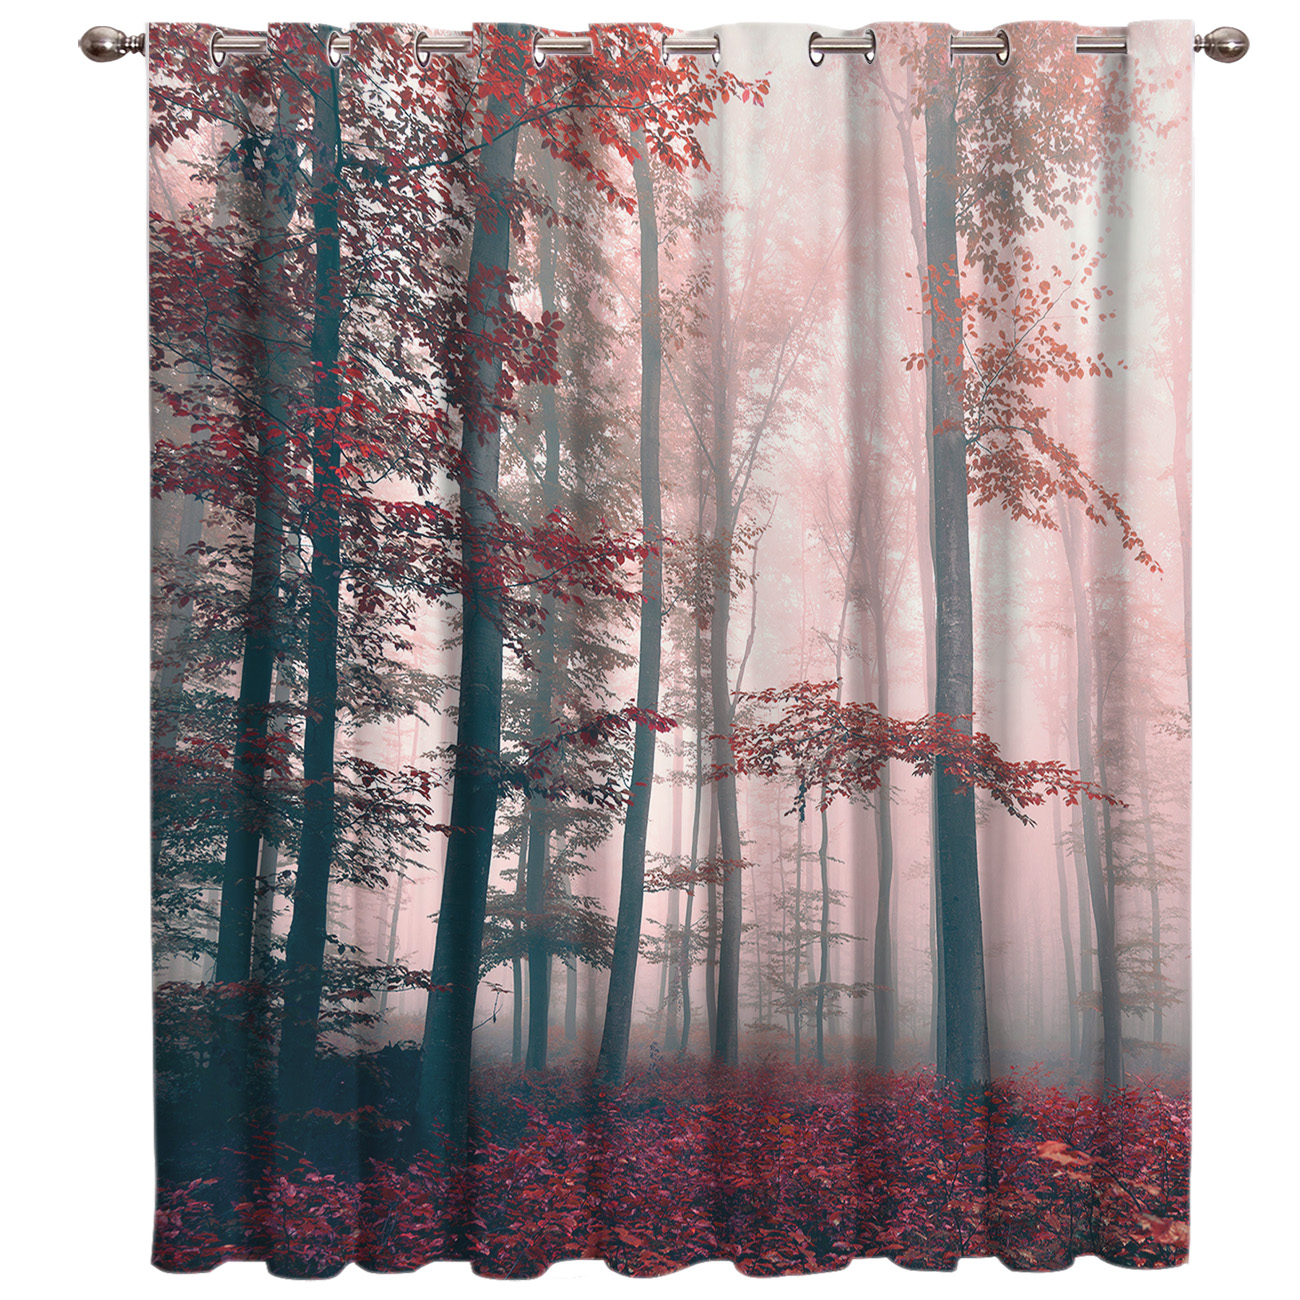 Red Mysterious Maple Leaves Forest Window Treatments Curtains Valance Window Curtains Dark Curtain Lights Living Room Bathroom